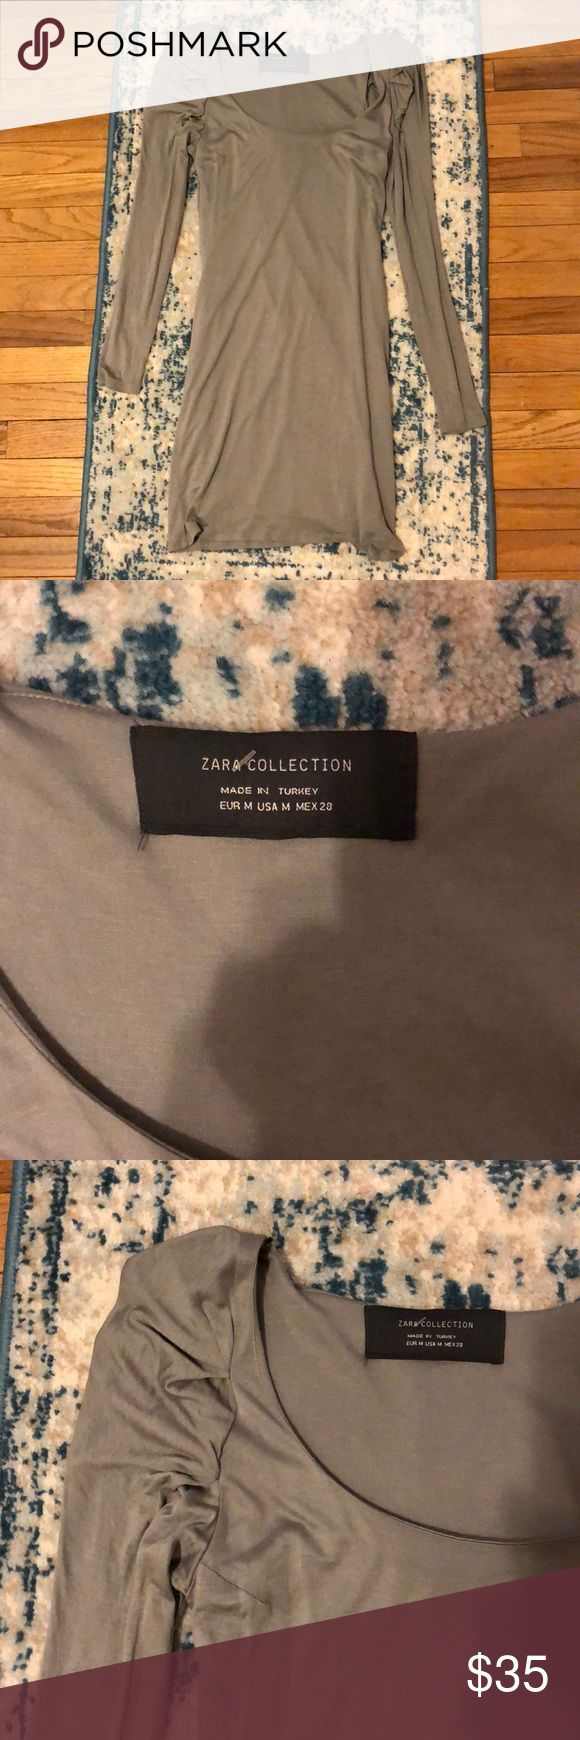 Zara Collection grey cocktail dress! Absolutely beautiful soft Zara Collection dress size Medium in excellent condition! Zara Dresses Long Sleeve